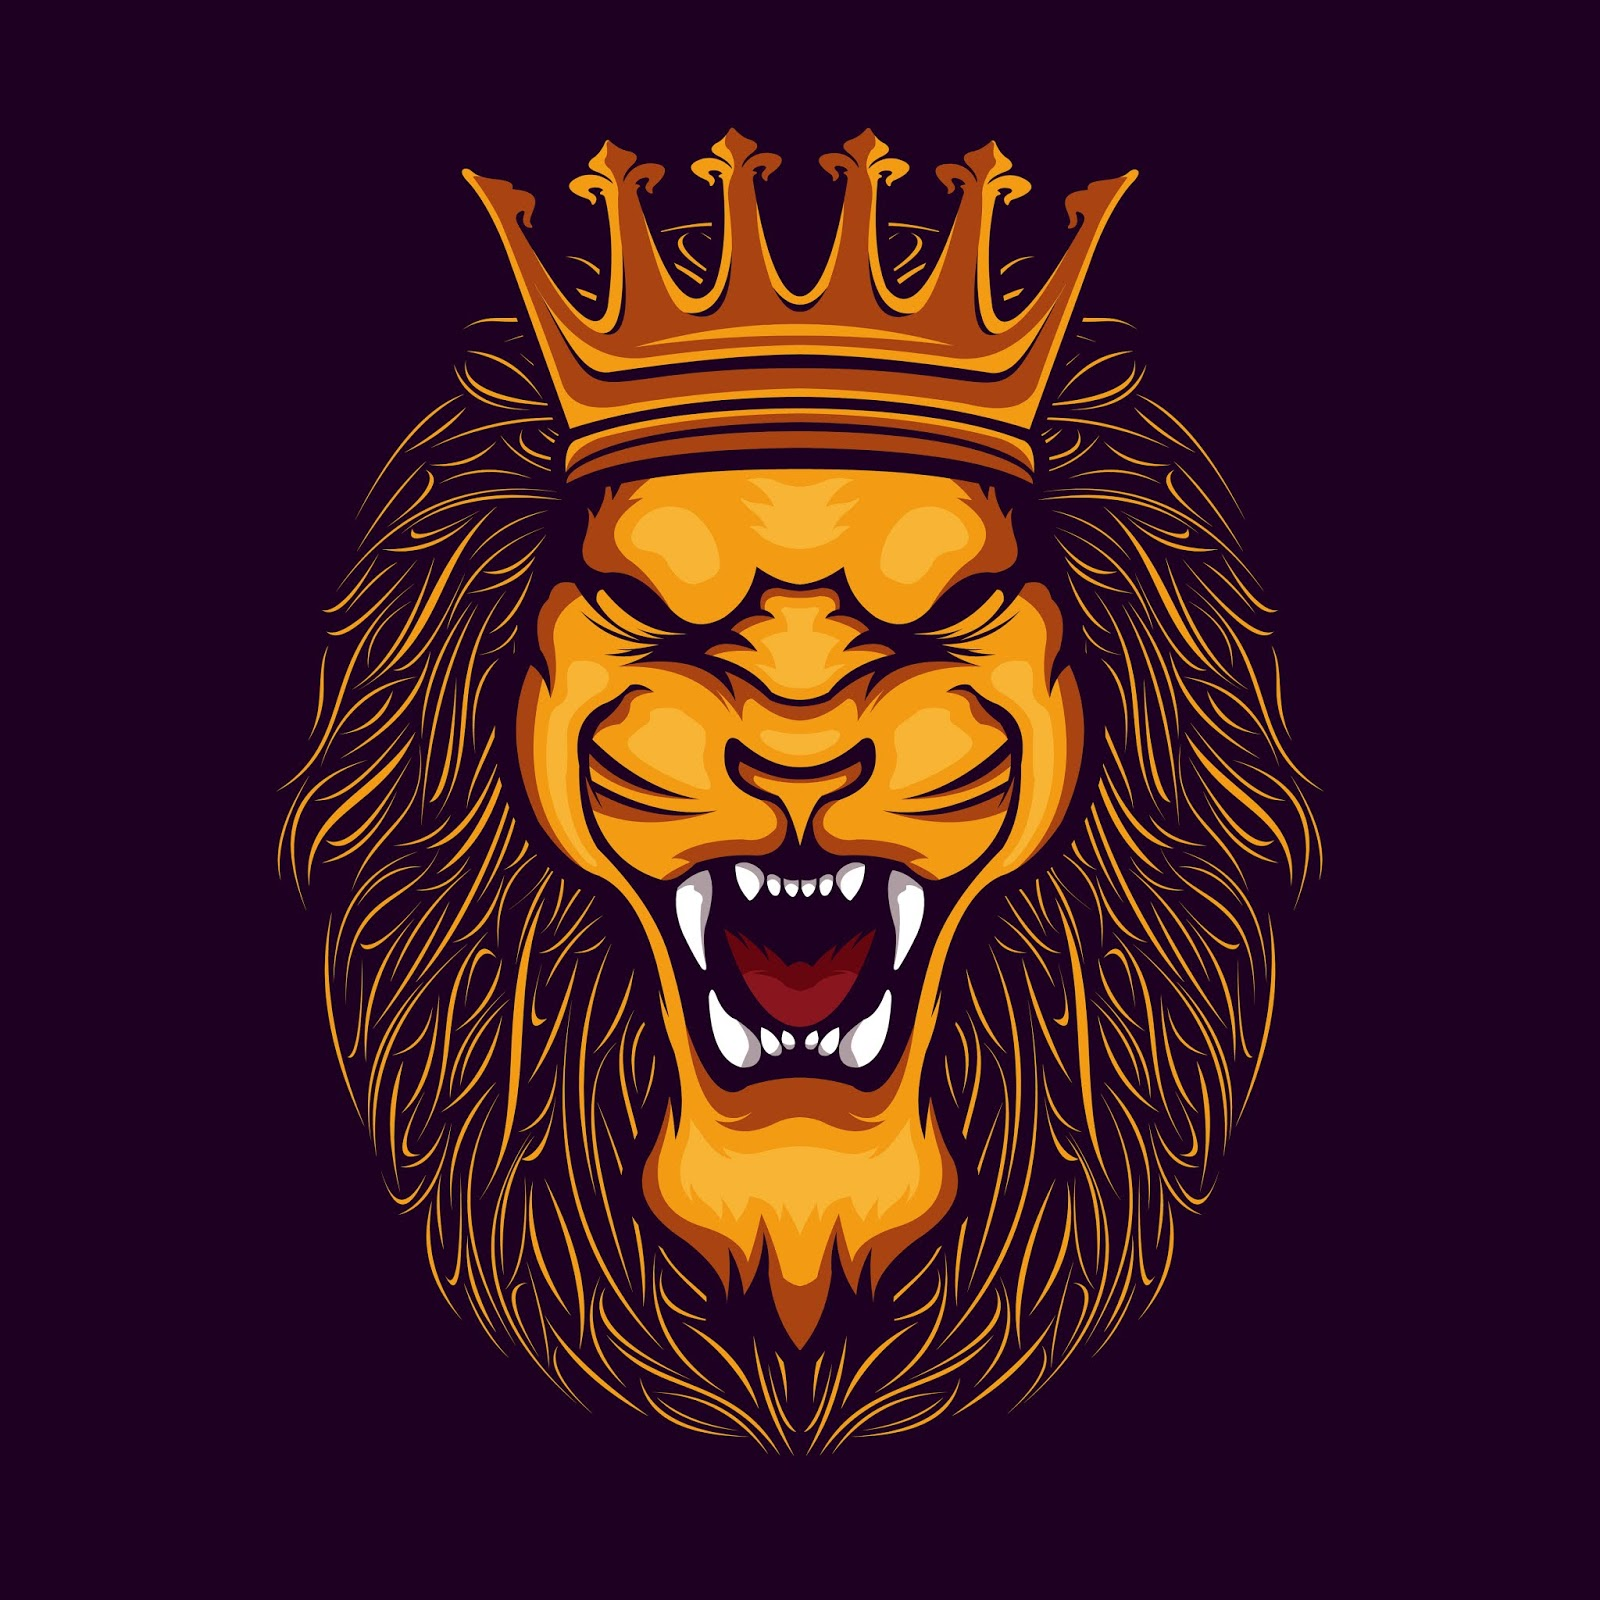 Lion Head Illustration Free Download Vector CDR, AI, EPS and PNG Formats